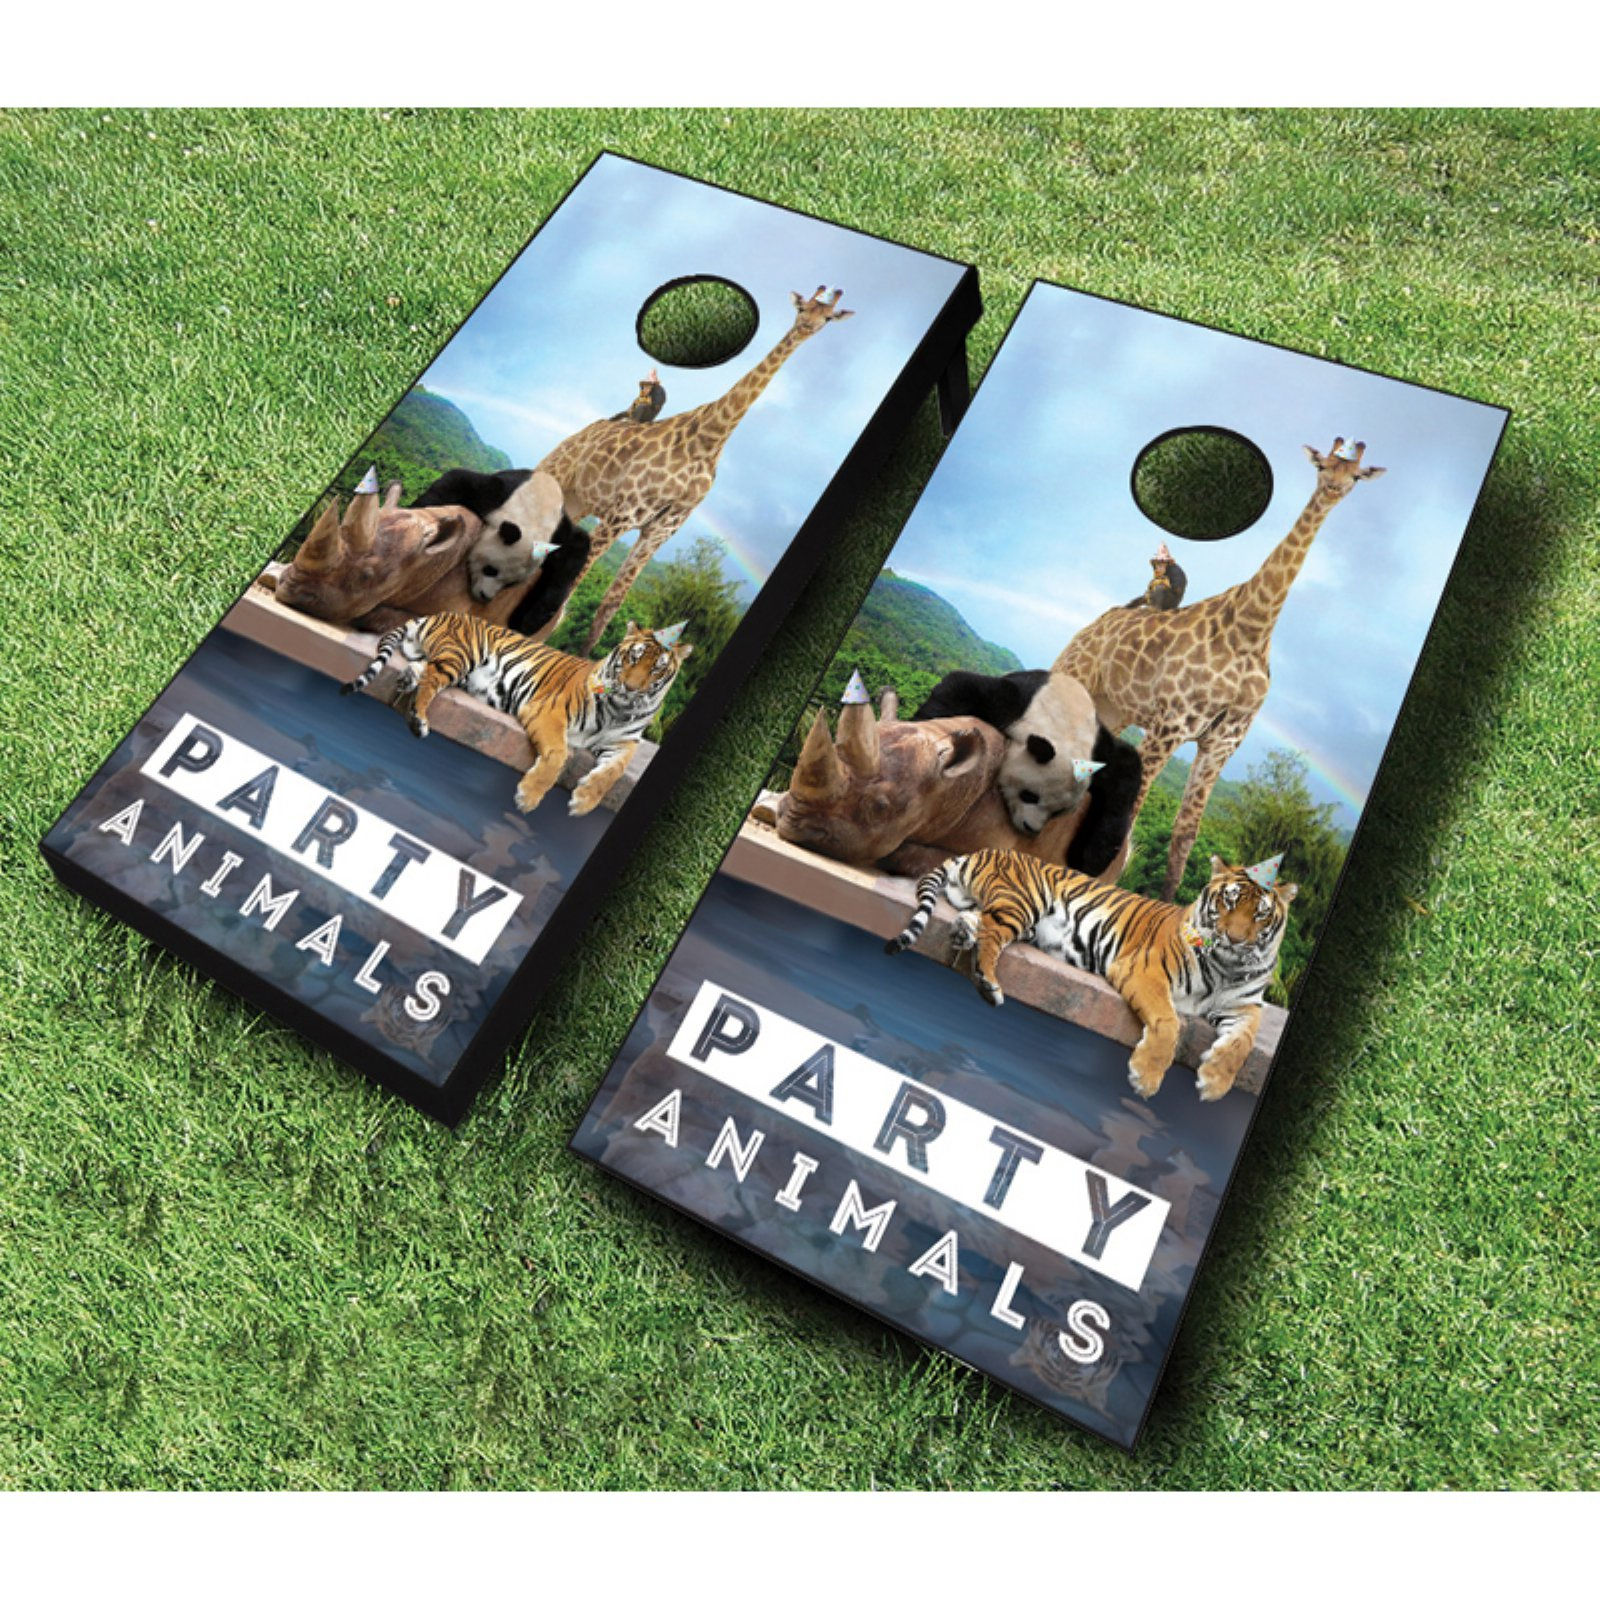 AJJ Cornhole Party Animals Cornhole Set with Bags by